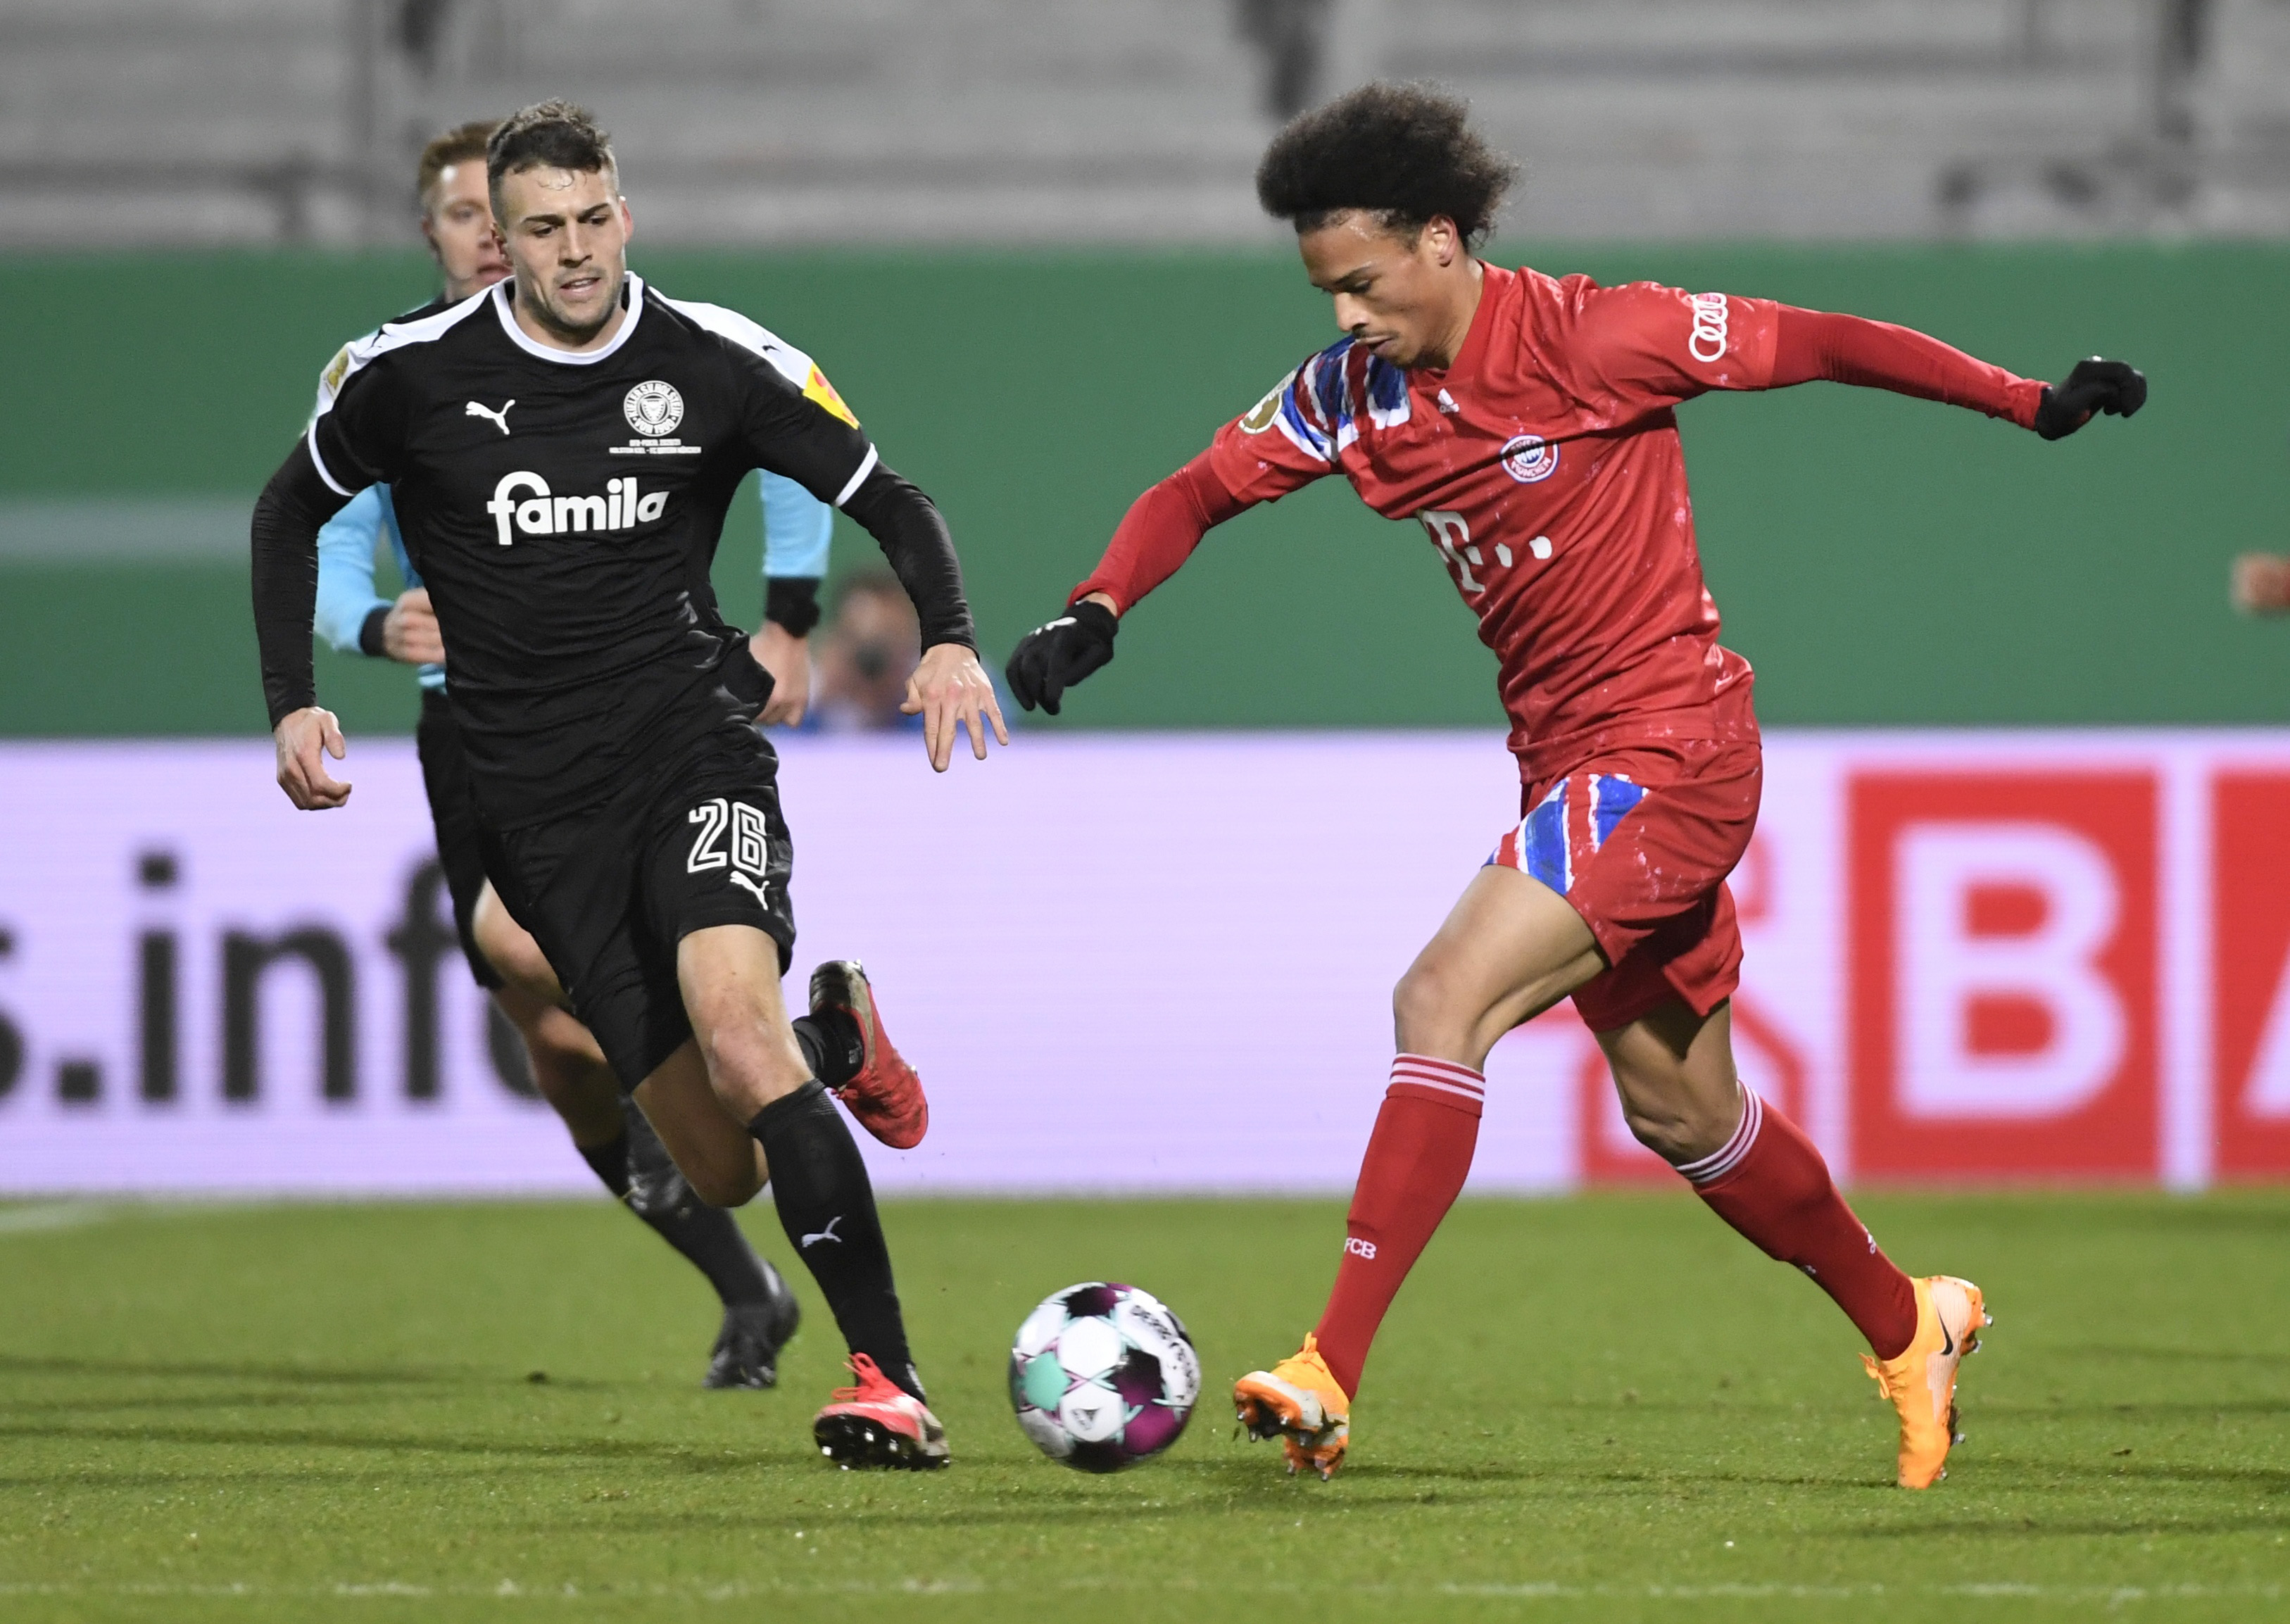 Holstein Kiel's Jonas Meffert in action with Bayern Munich's Leroy Sane. Photo: Reuters